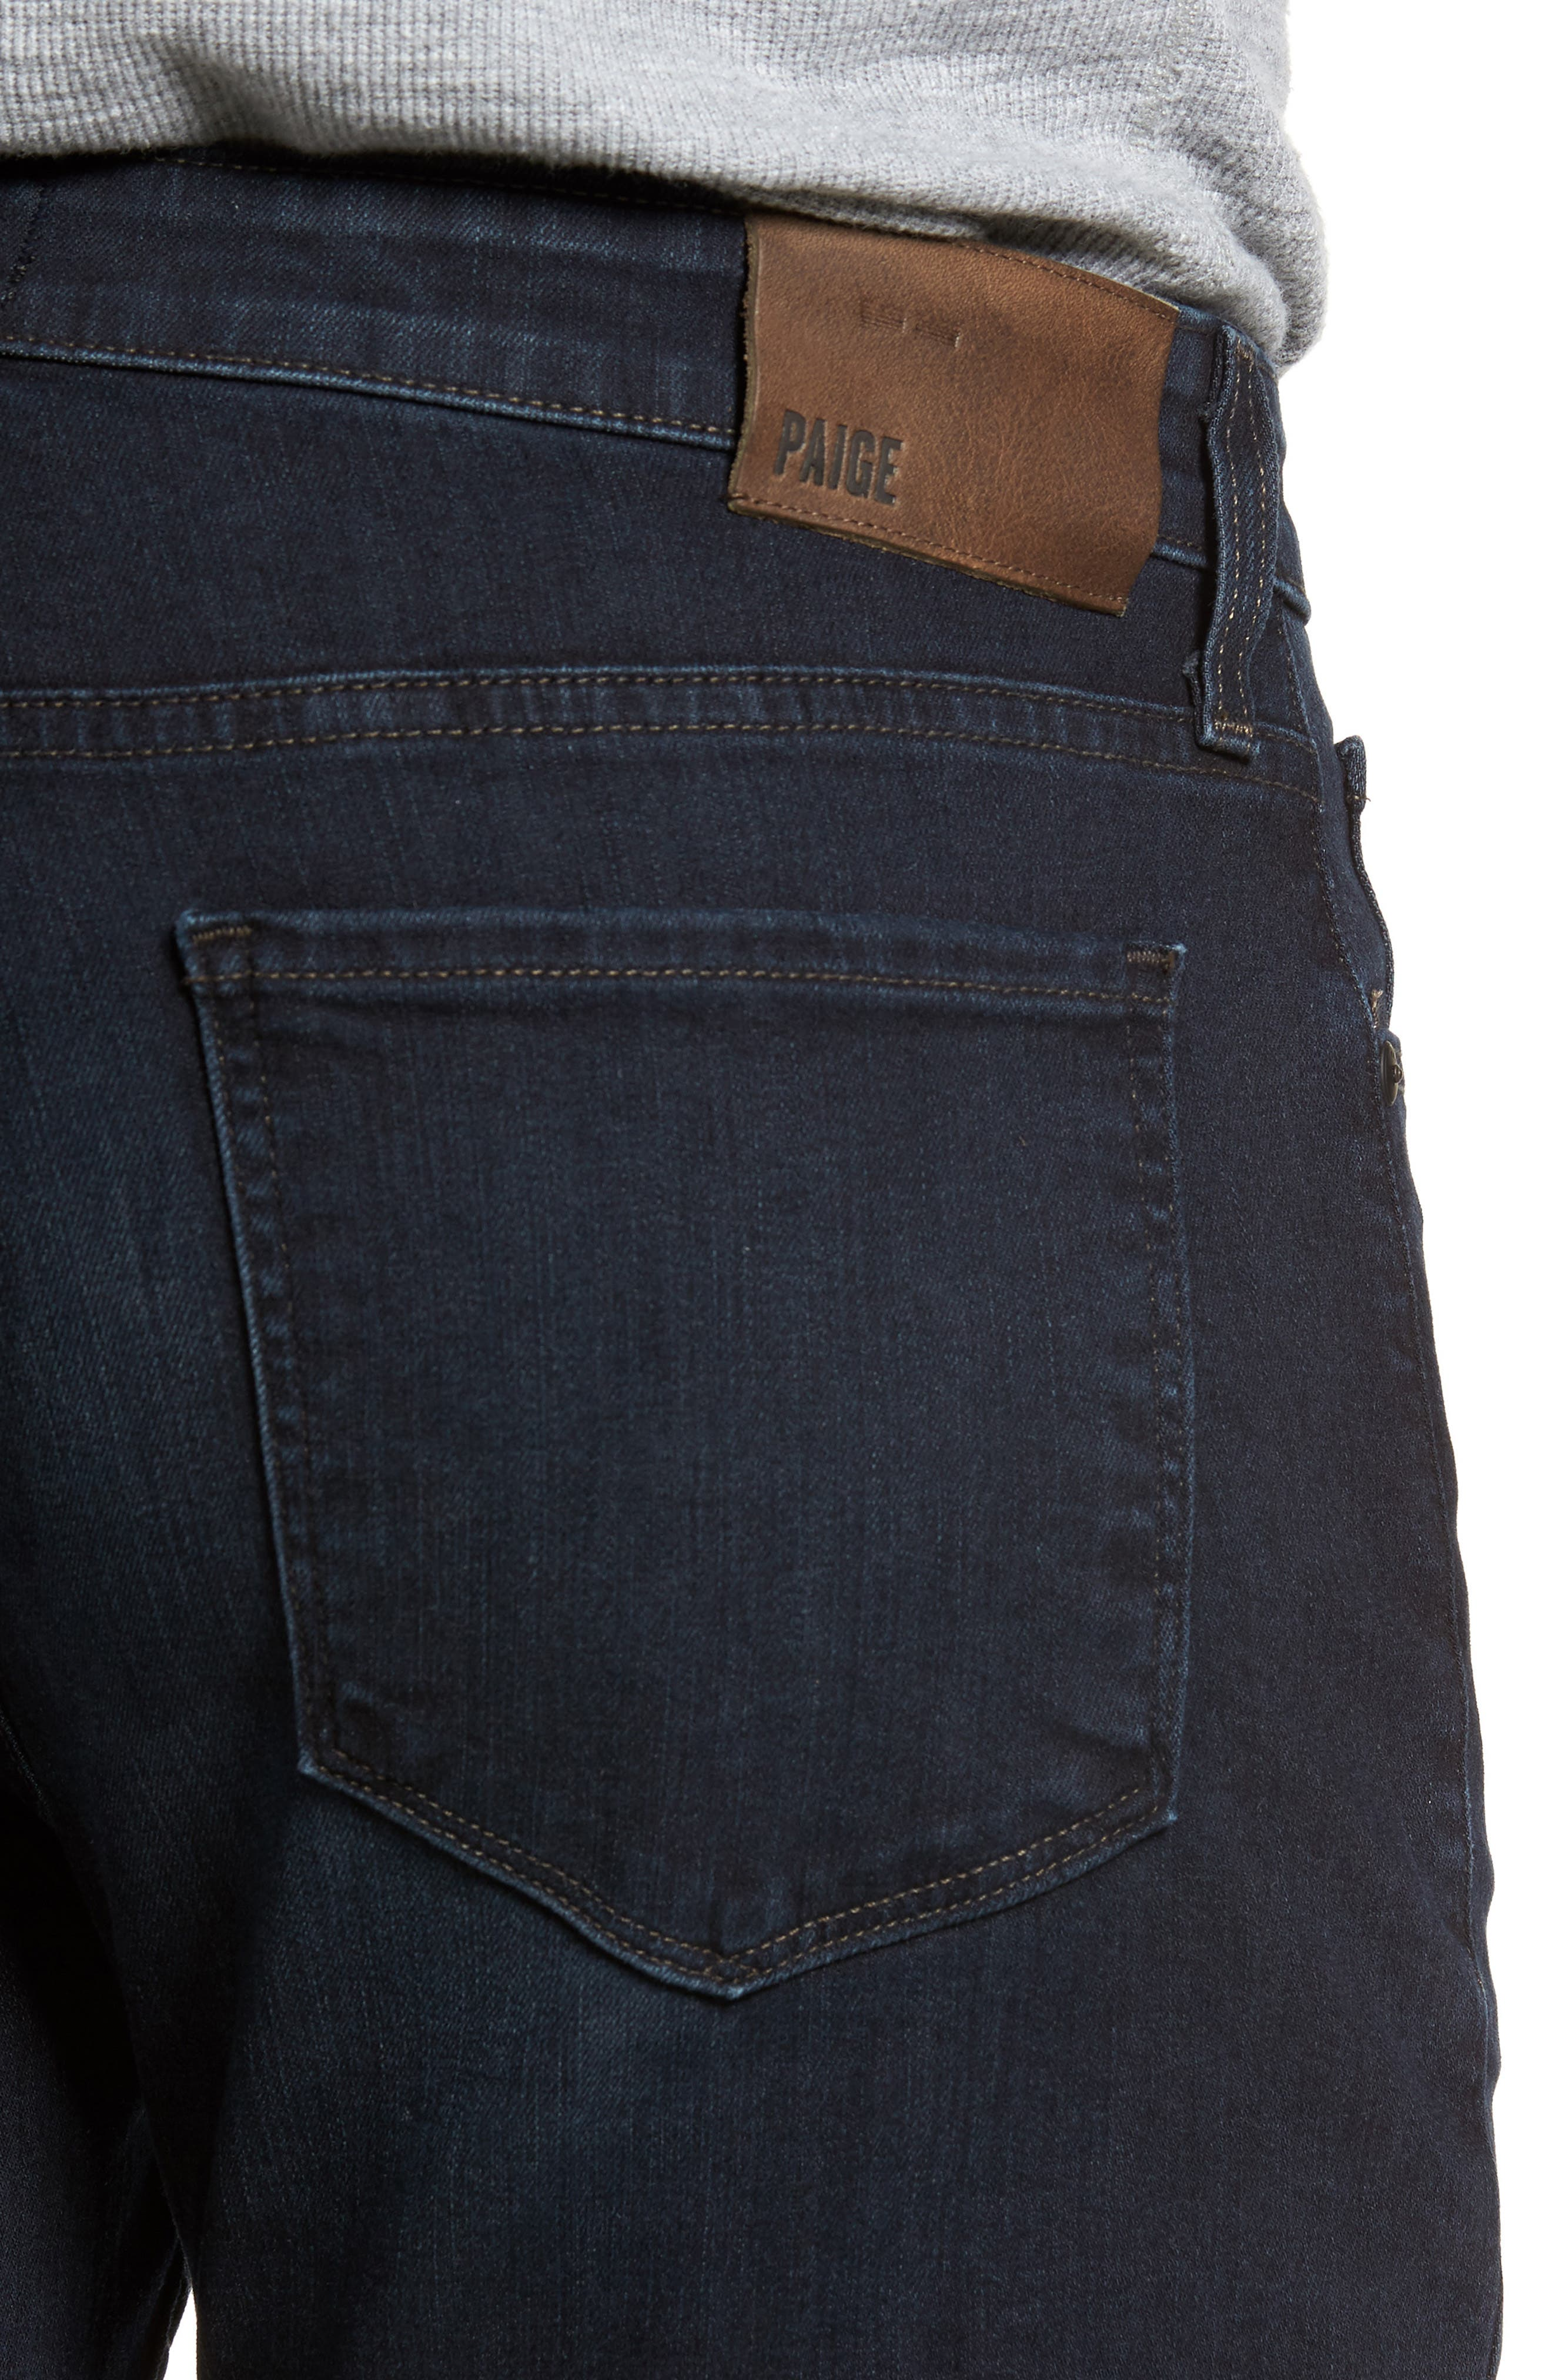 Doheny Relaxed Straight Leg Jeans,                             Alternate thumbnail 4, color,                             400